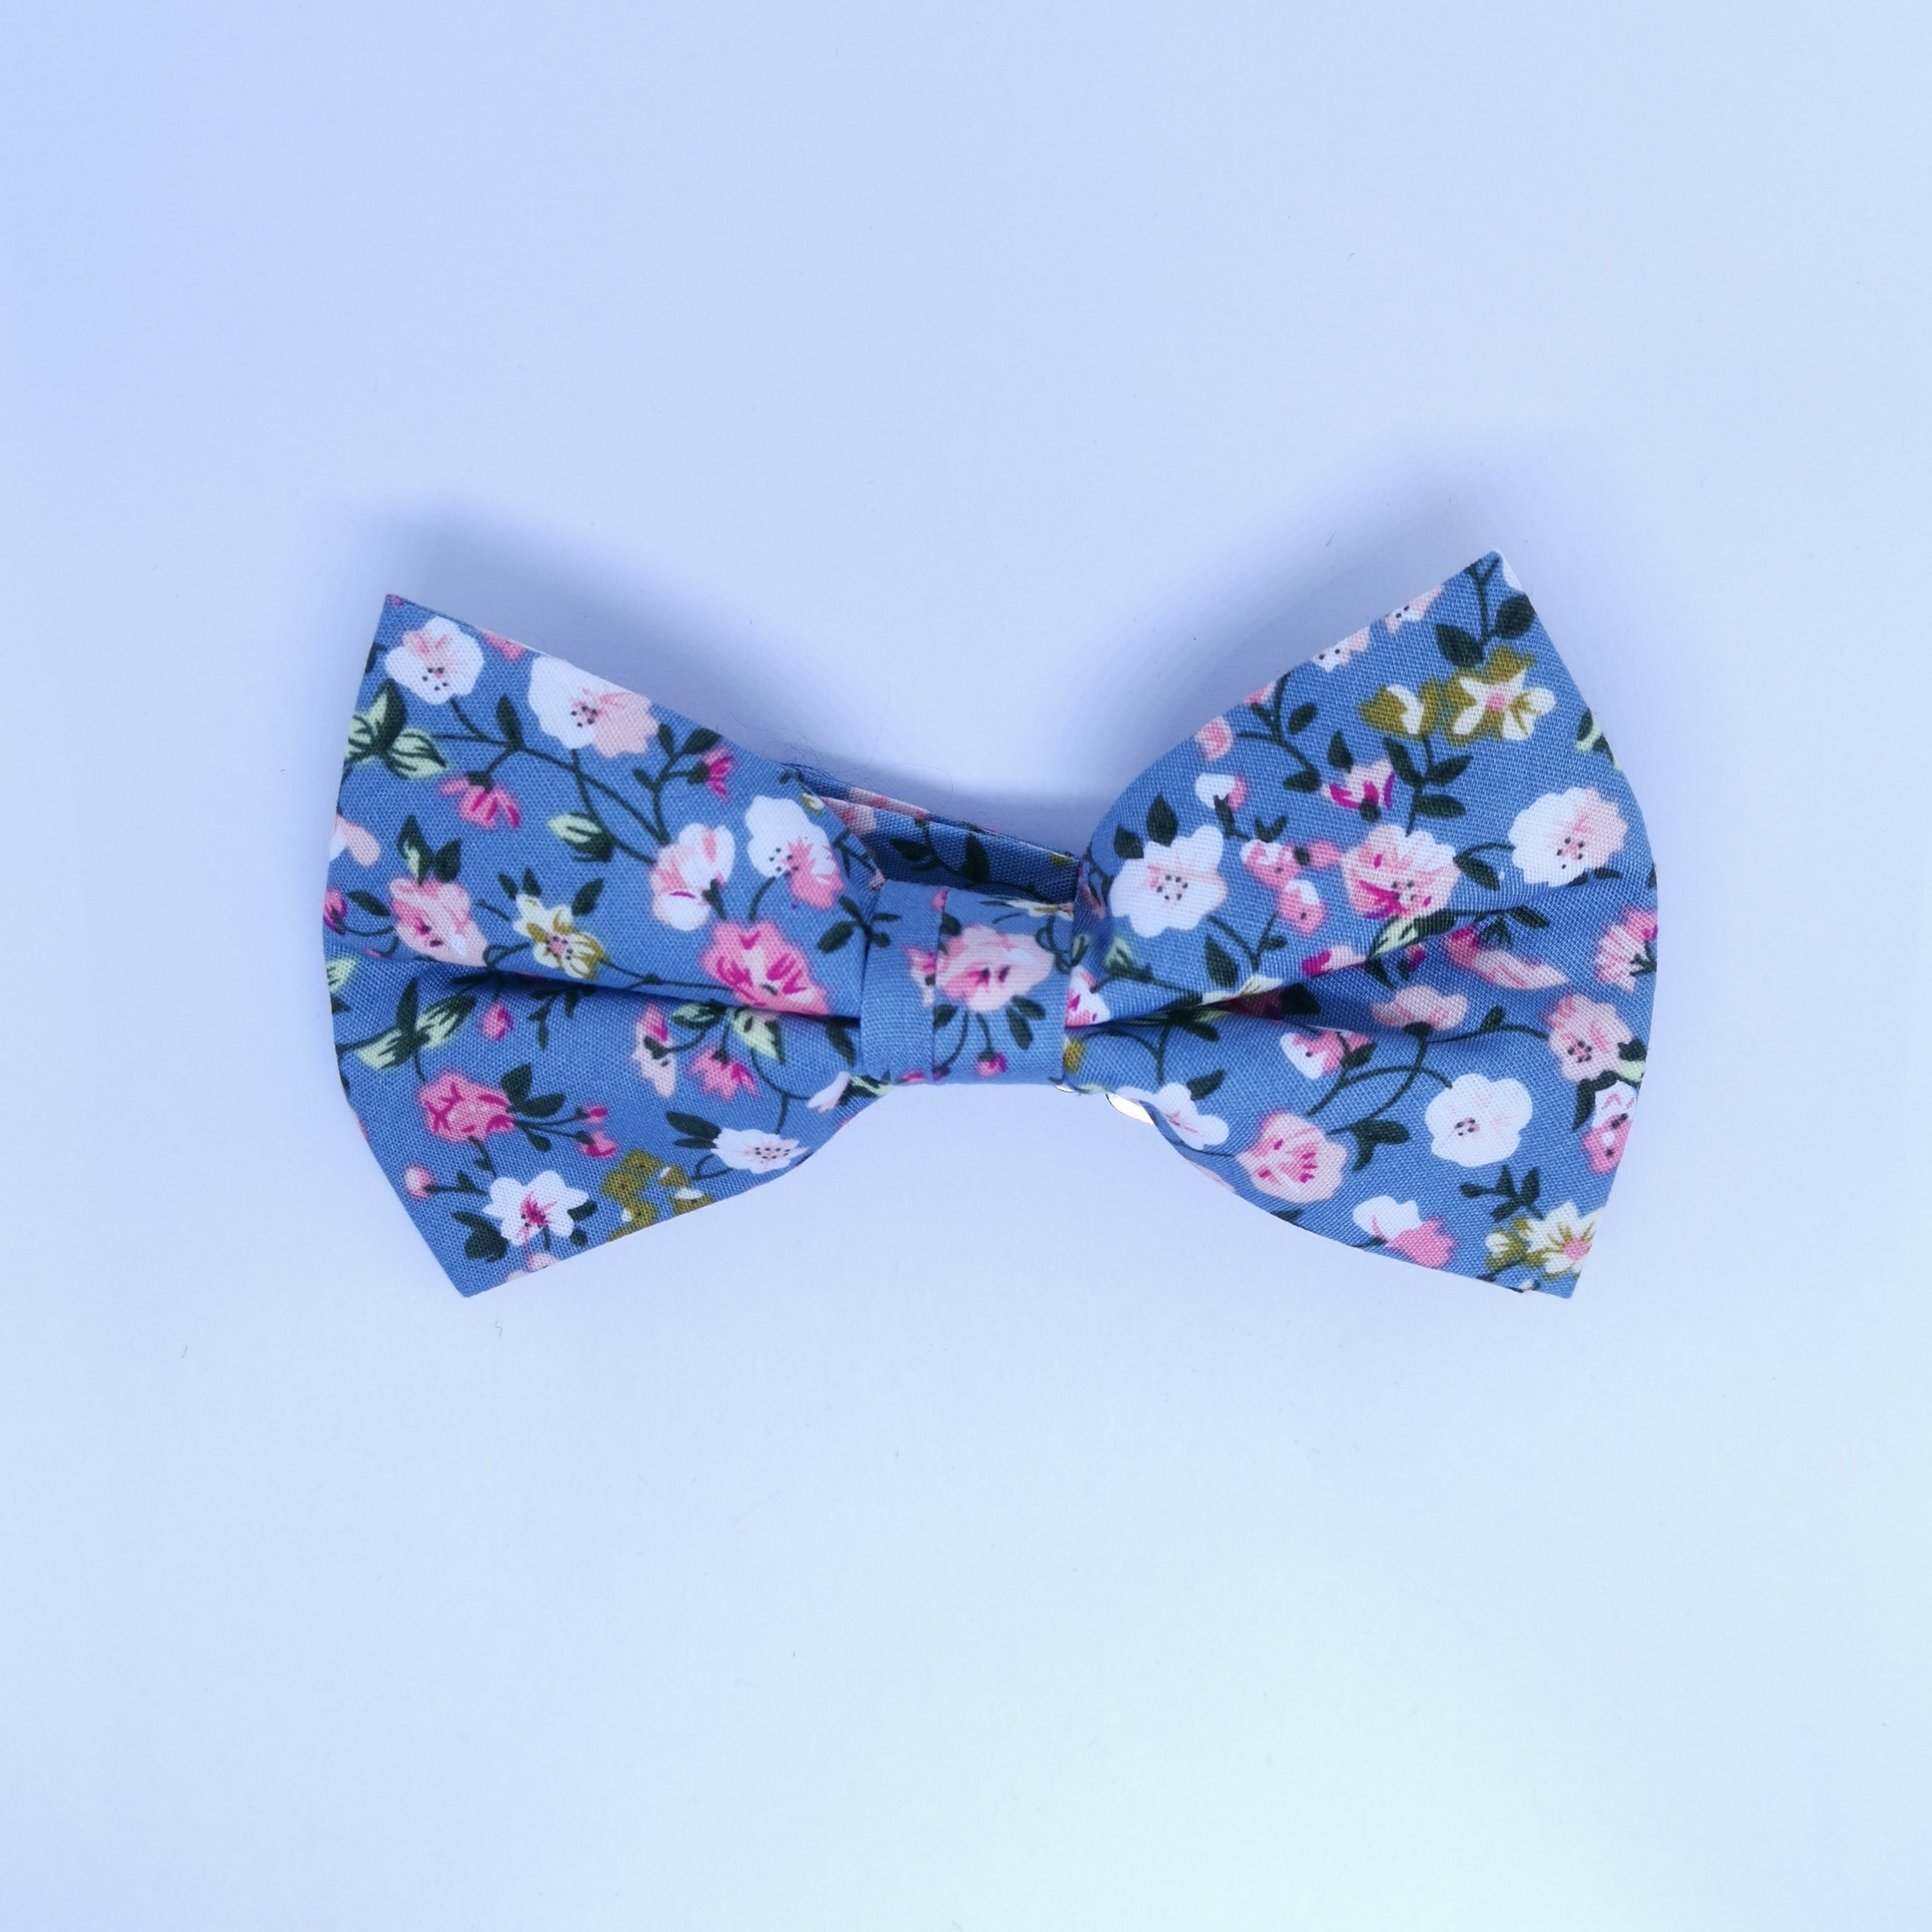 Floral Woven Bow Tie